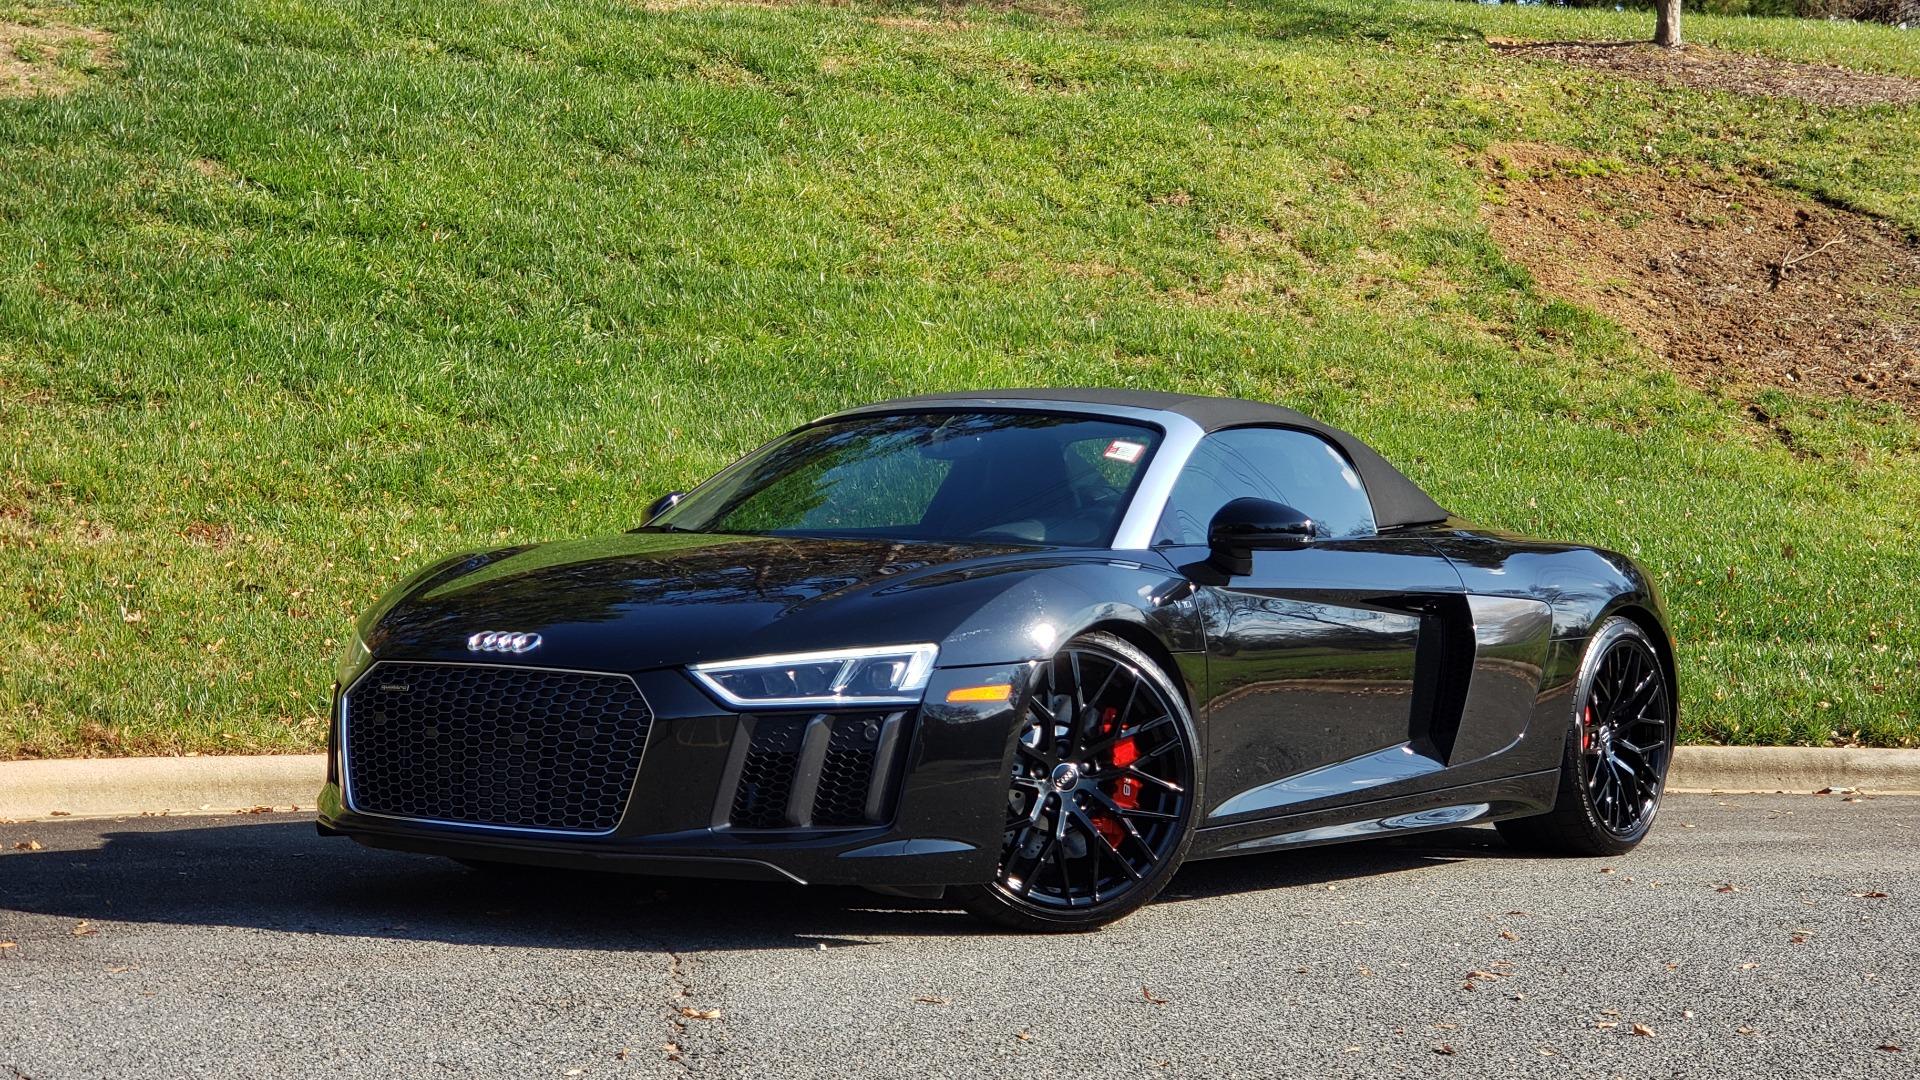 Used 2017 Audi R8 SPYDER V10 S-TRONIC / CARBON EXT & INT PKG / NAV / REARVIEW for sale Sold at Formula Imports in Charlotte NC 28227 5